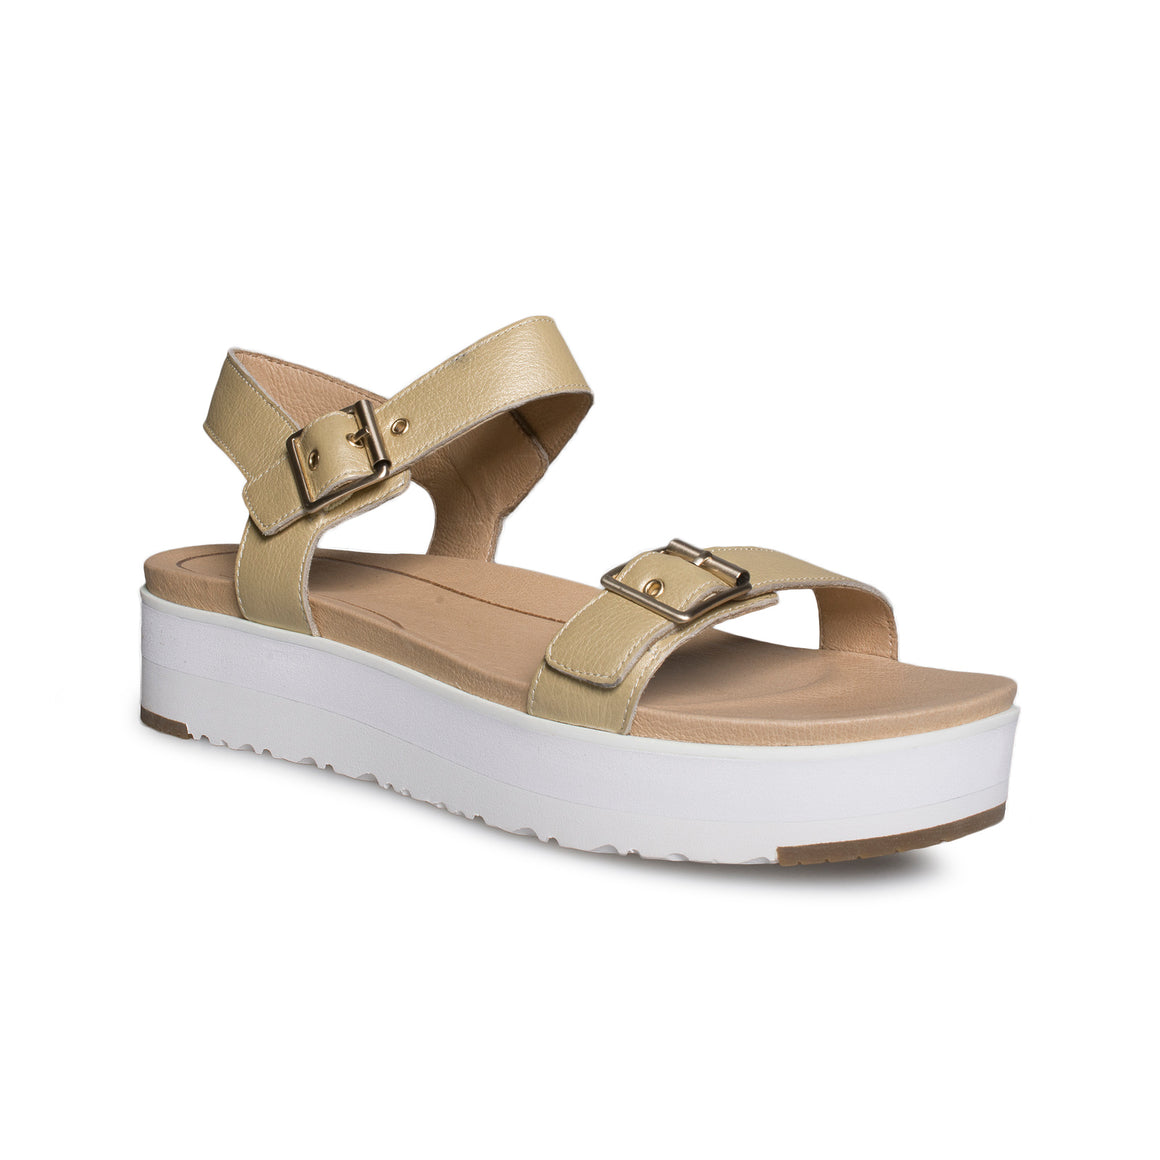 UGG Angie Metallic Gold Sandals - Women's